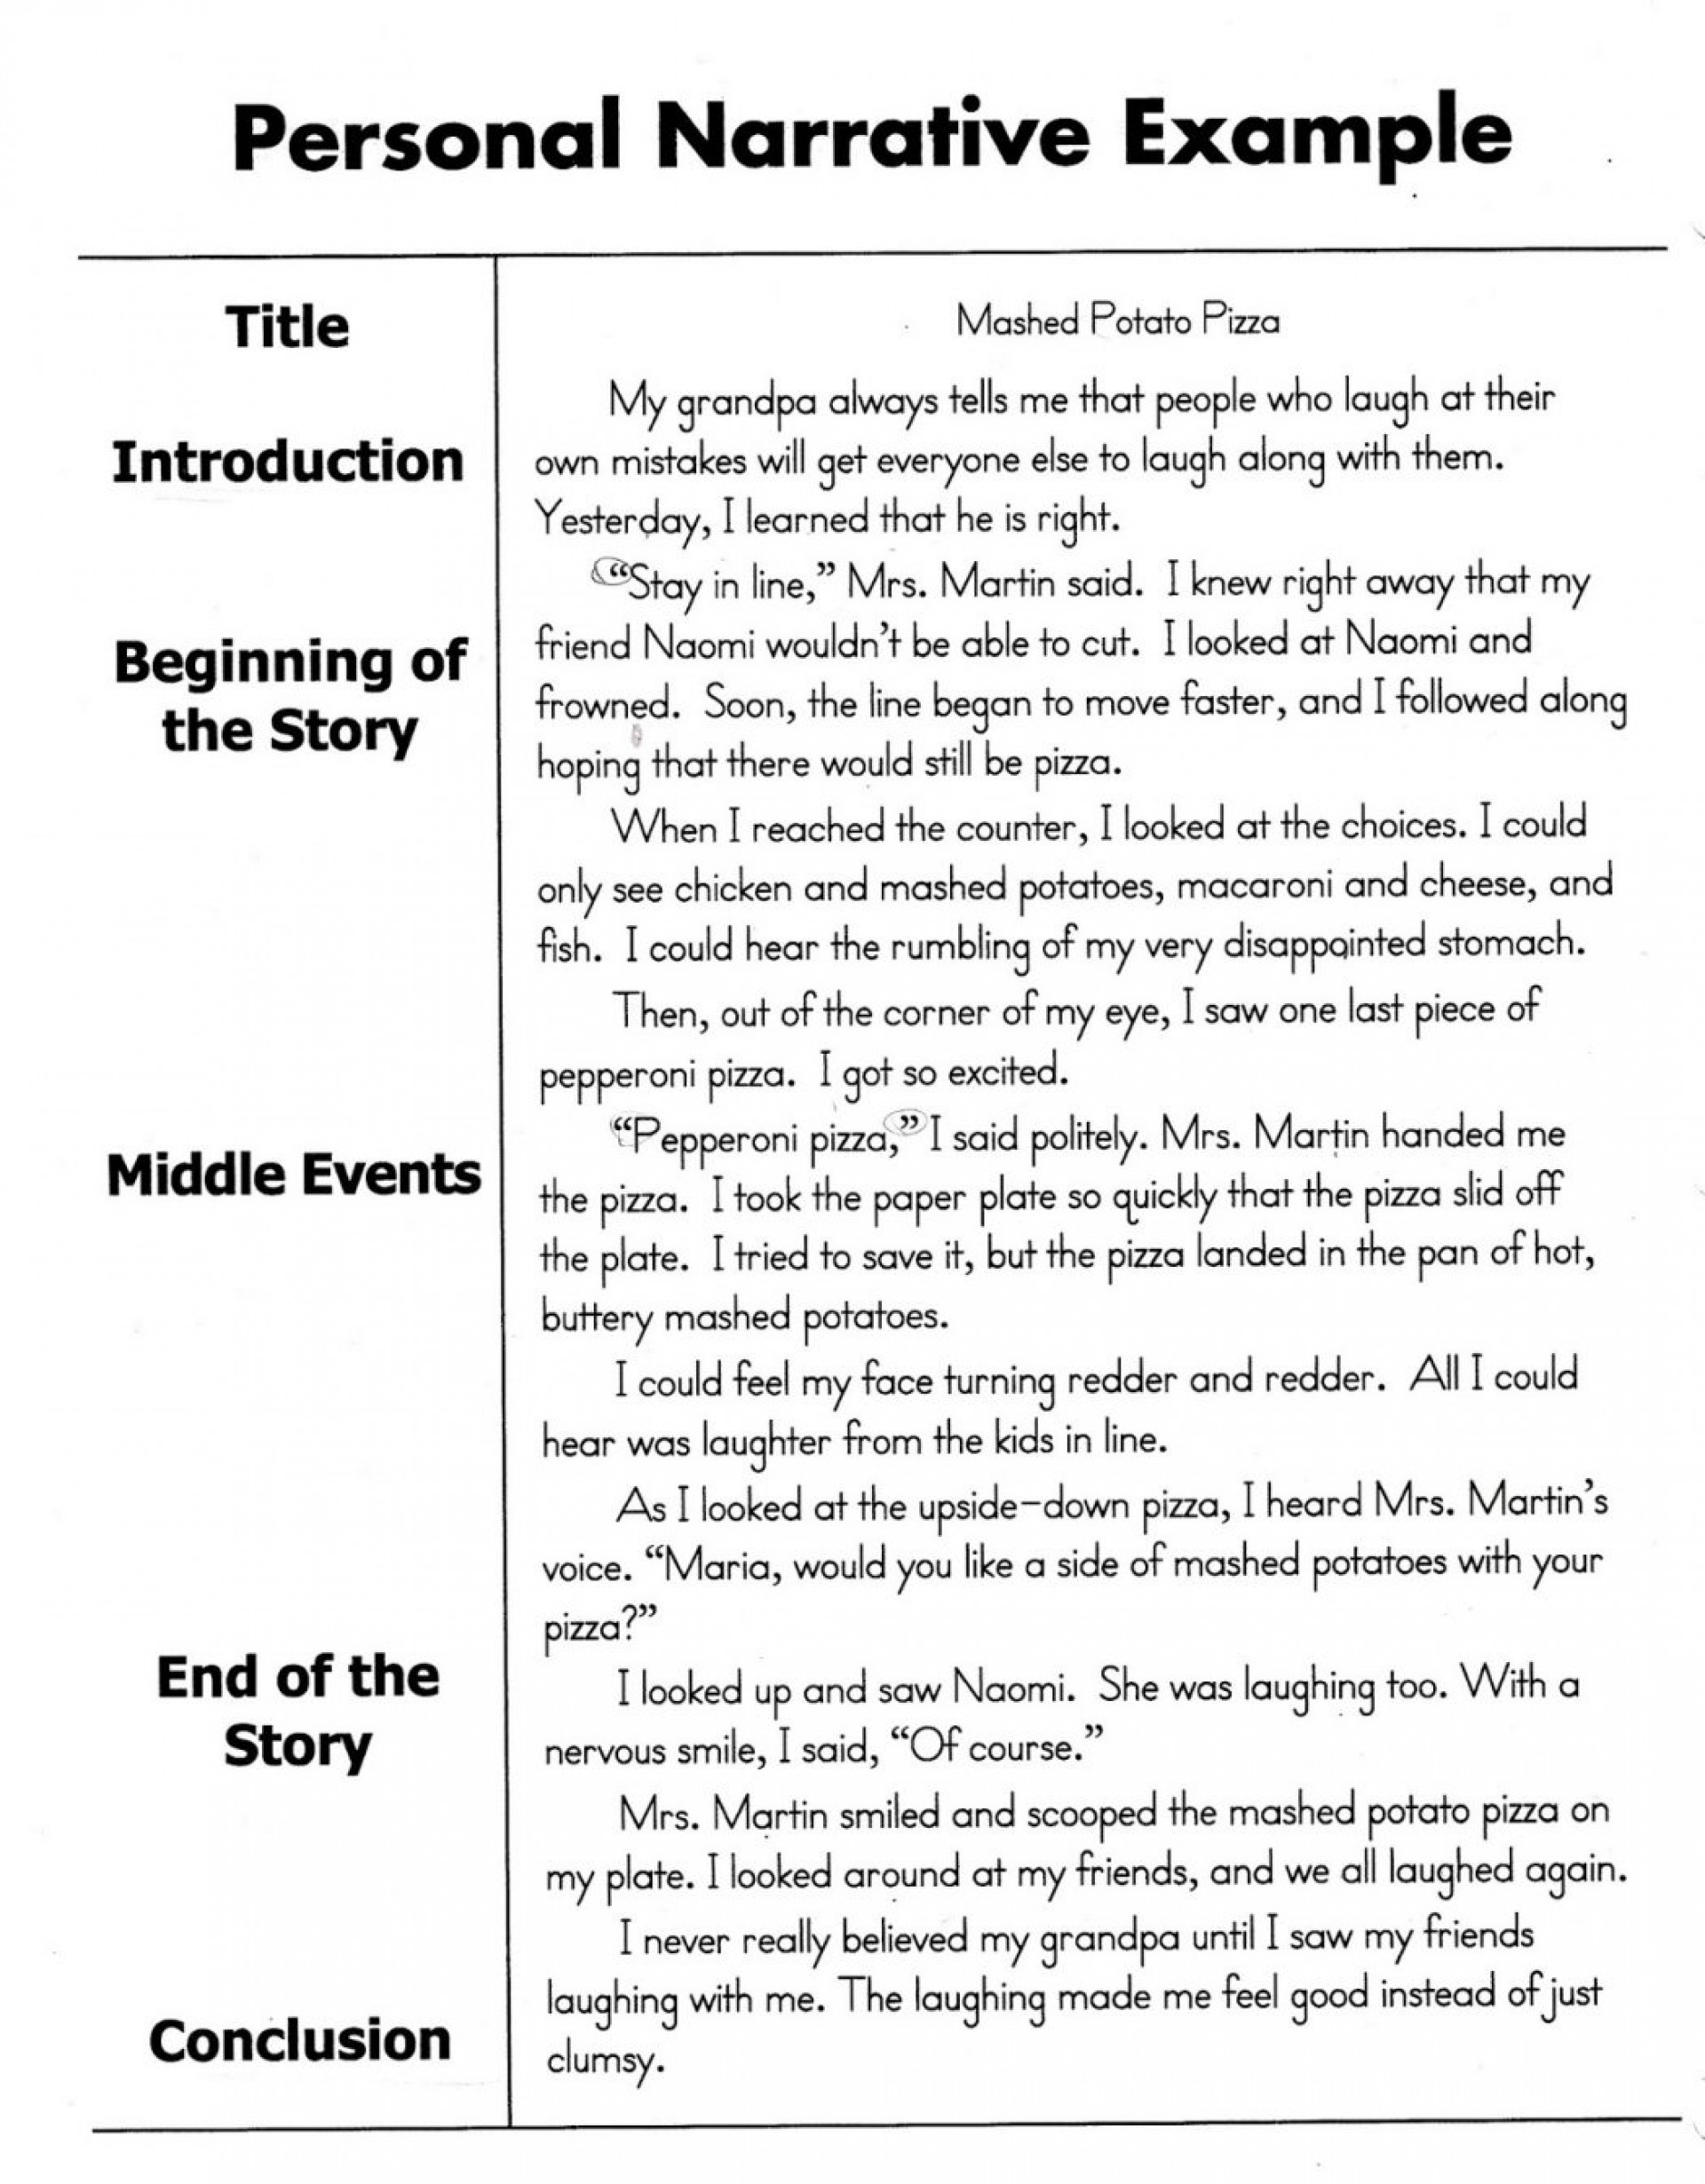 011 Macbeth Essay Topic Sample Narrative High School Topics For College Students Personal Prompts 1048x1343 Fascinating Writing 5th Grade Common Core 4th 1920